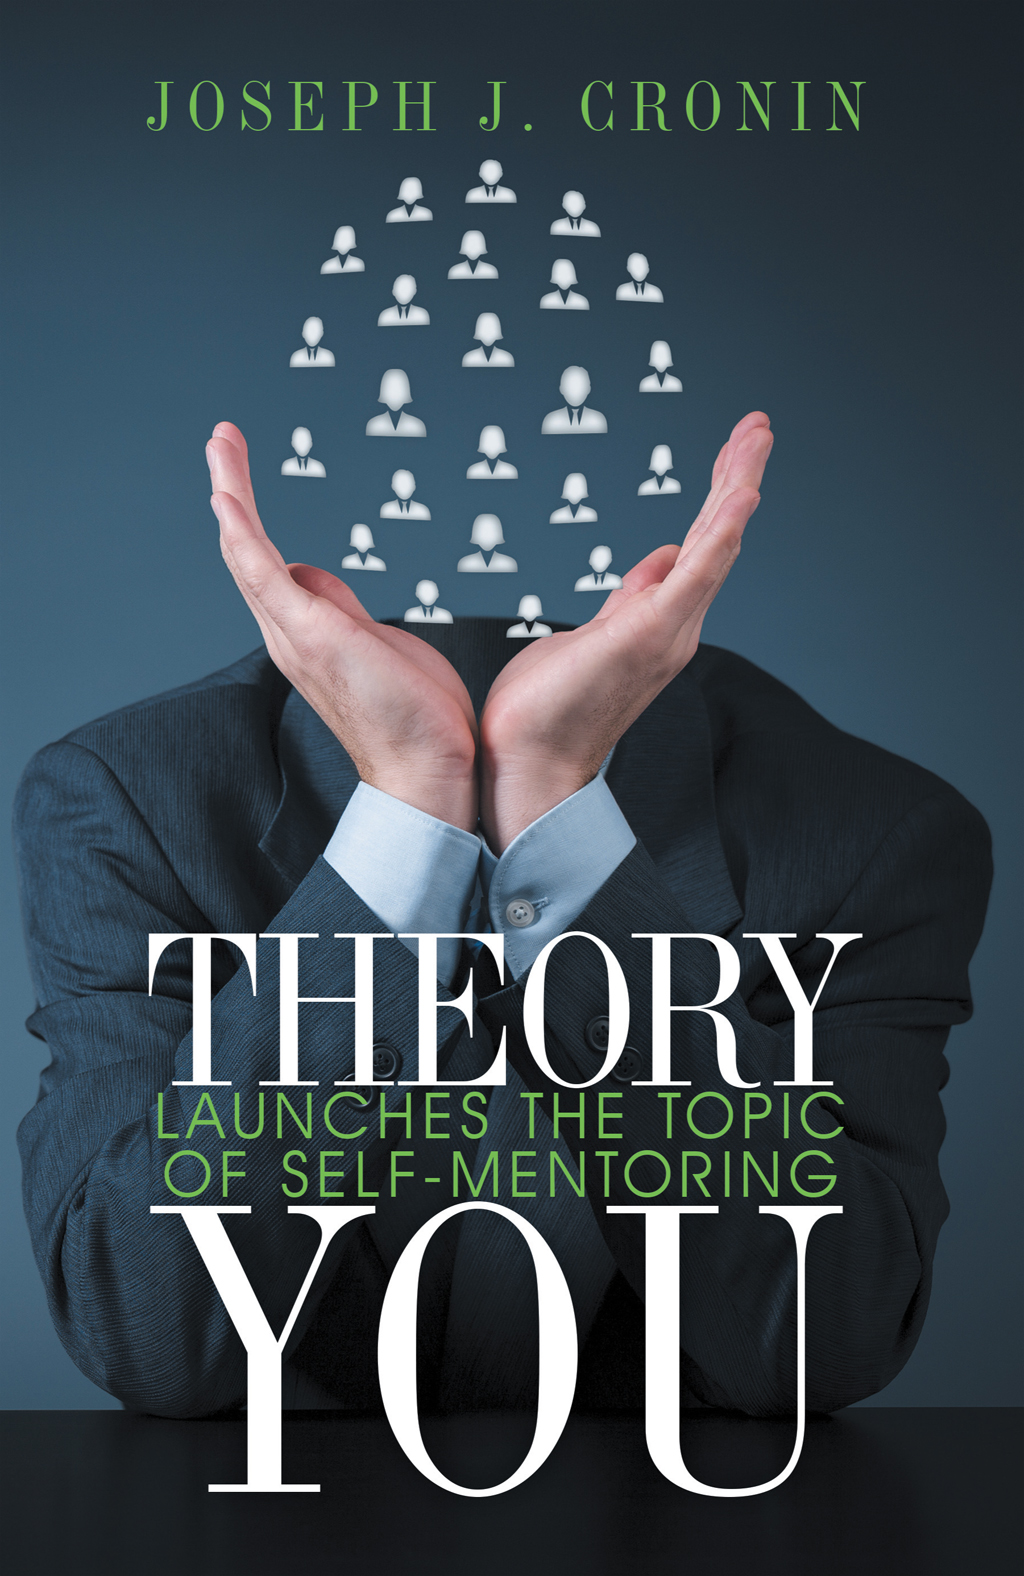 Theory You, a book about Self-mentoring